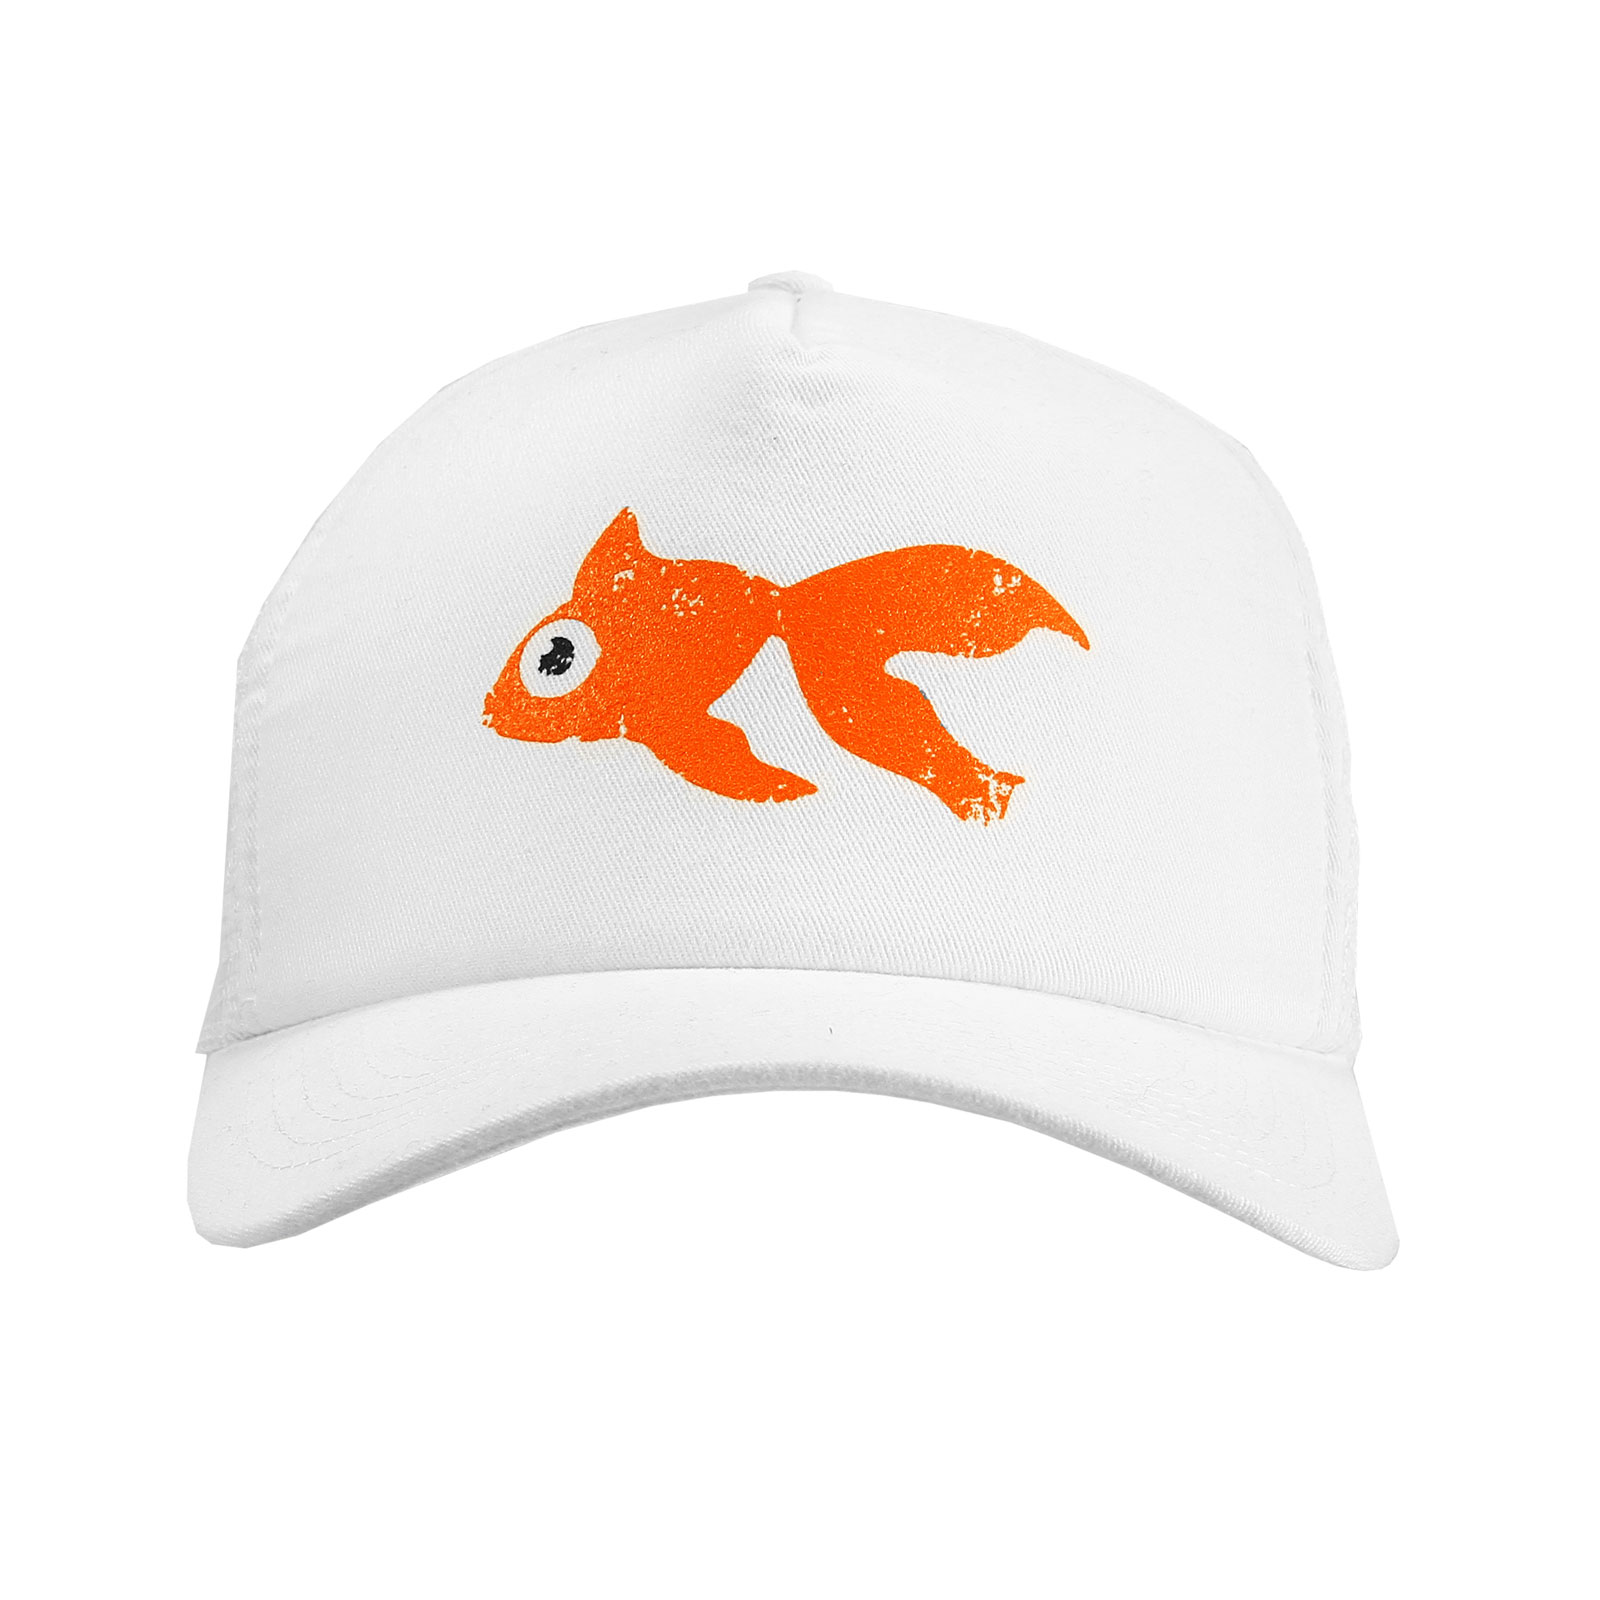 Goldfish Caps